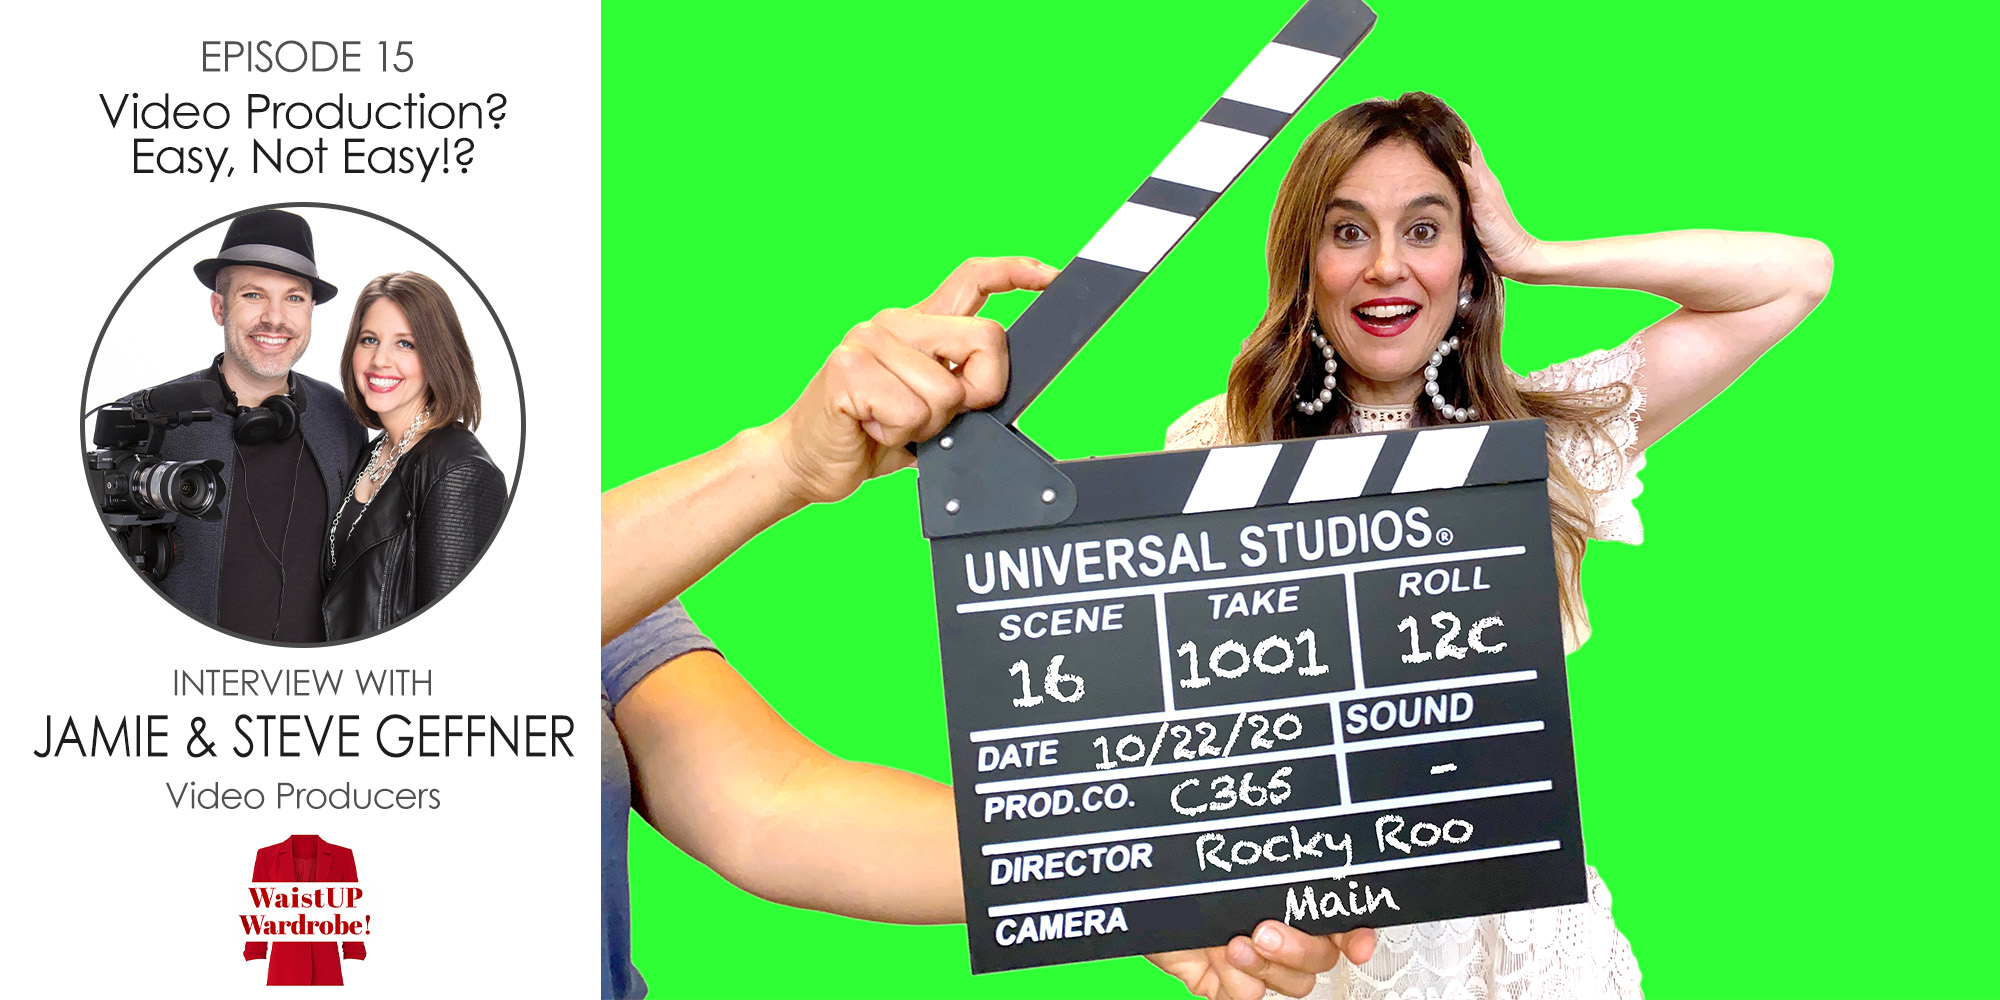 Christine Vartanian posing in front of a green background with a move clapper that has Universal Studios written on it.